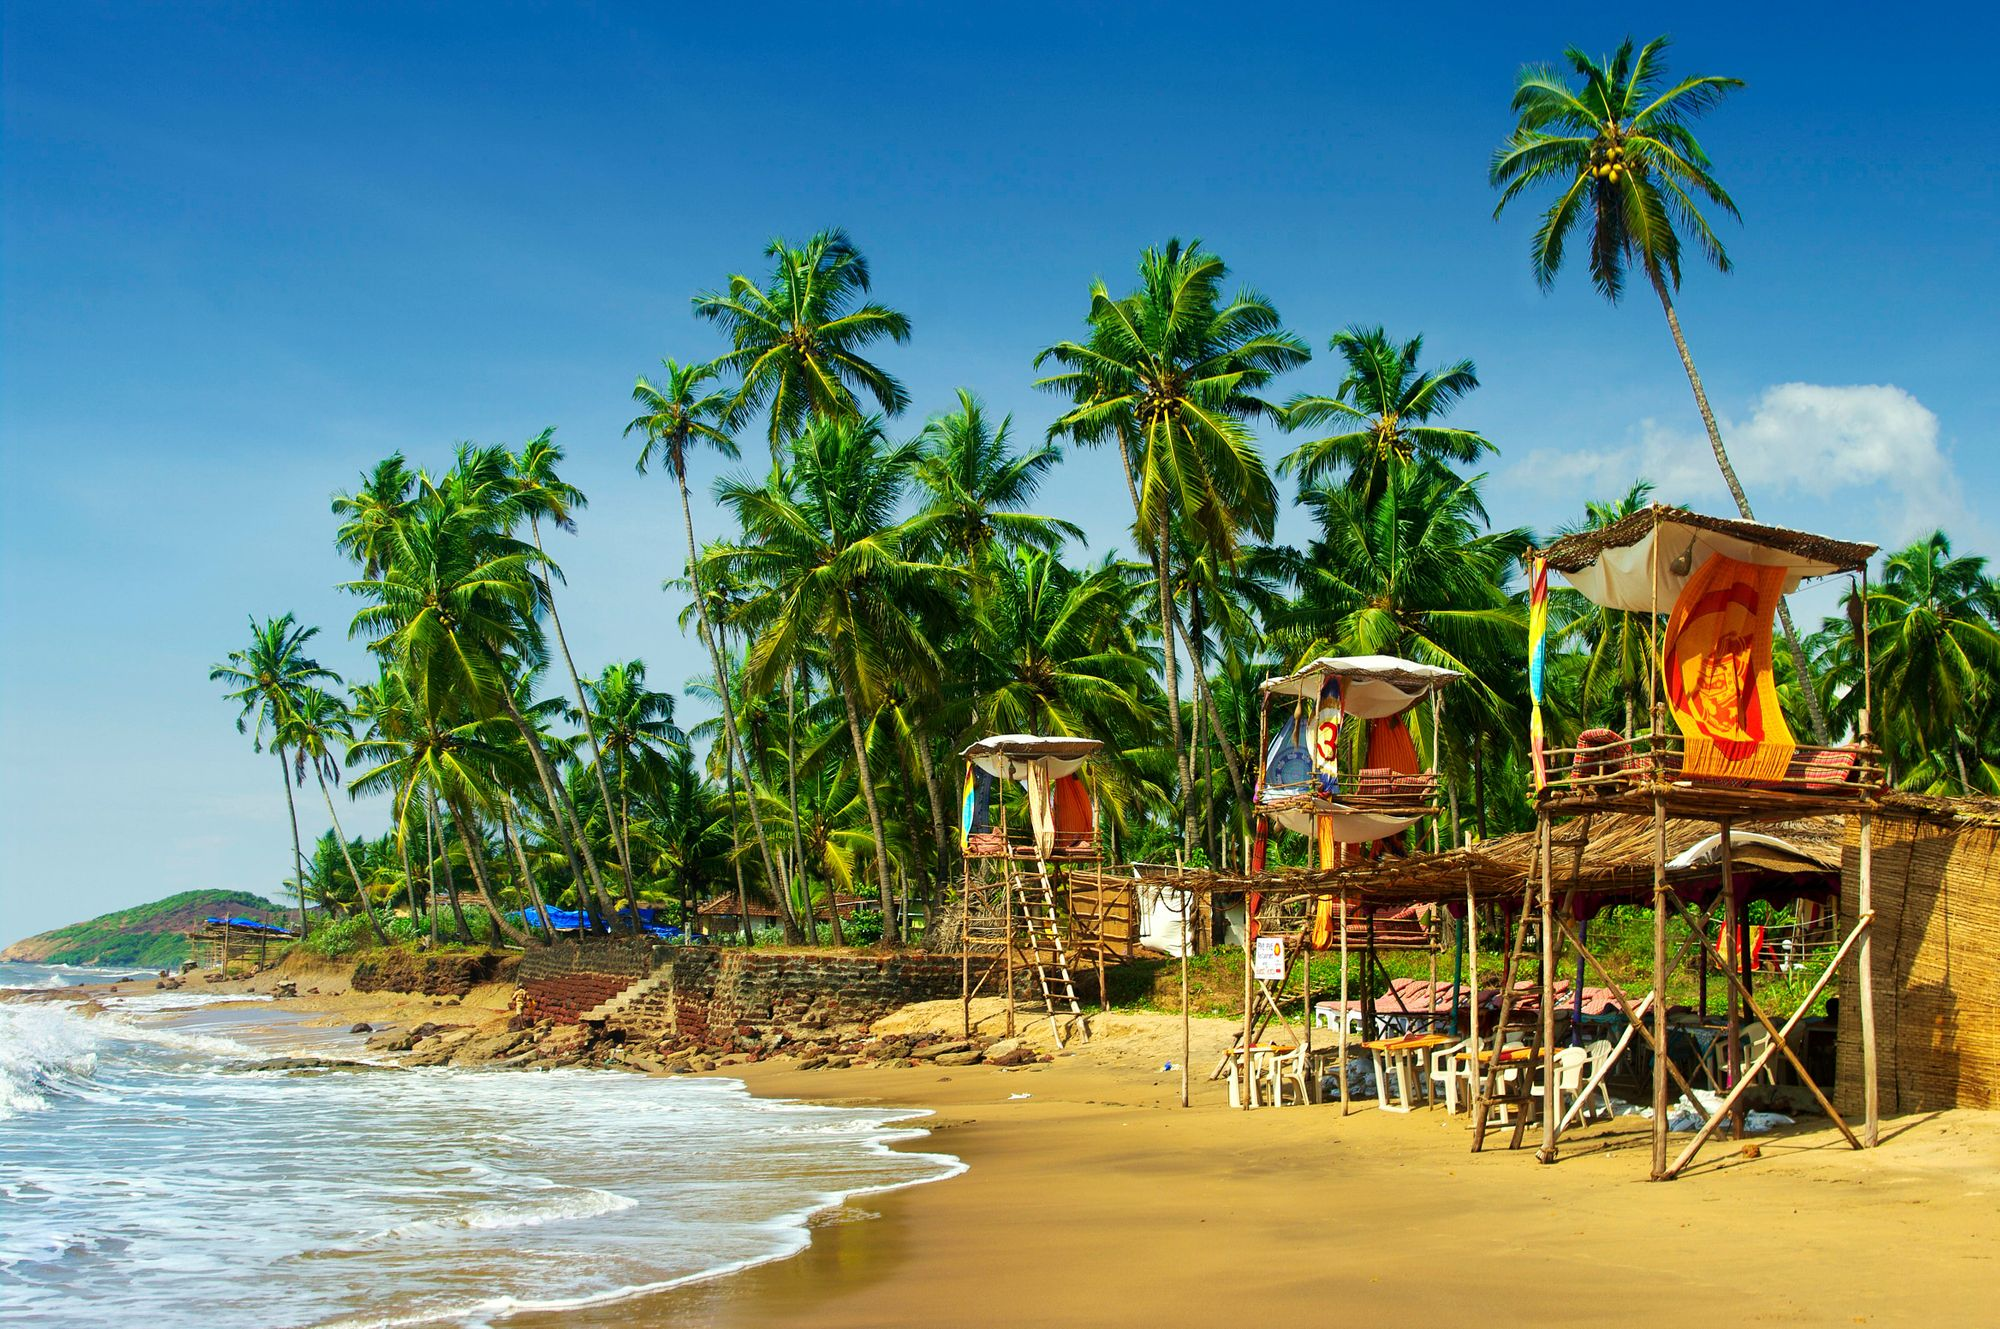 50 Best Things to Do in Goa - 2021 Updated